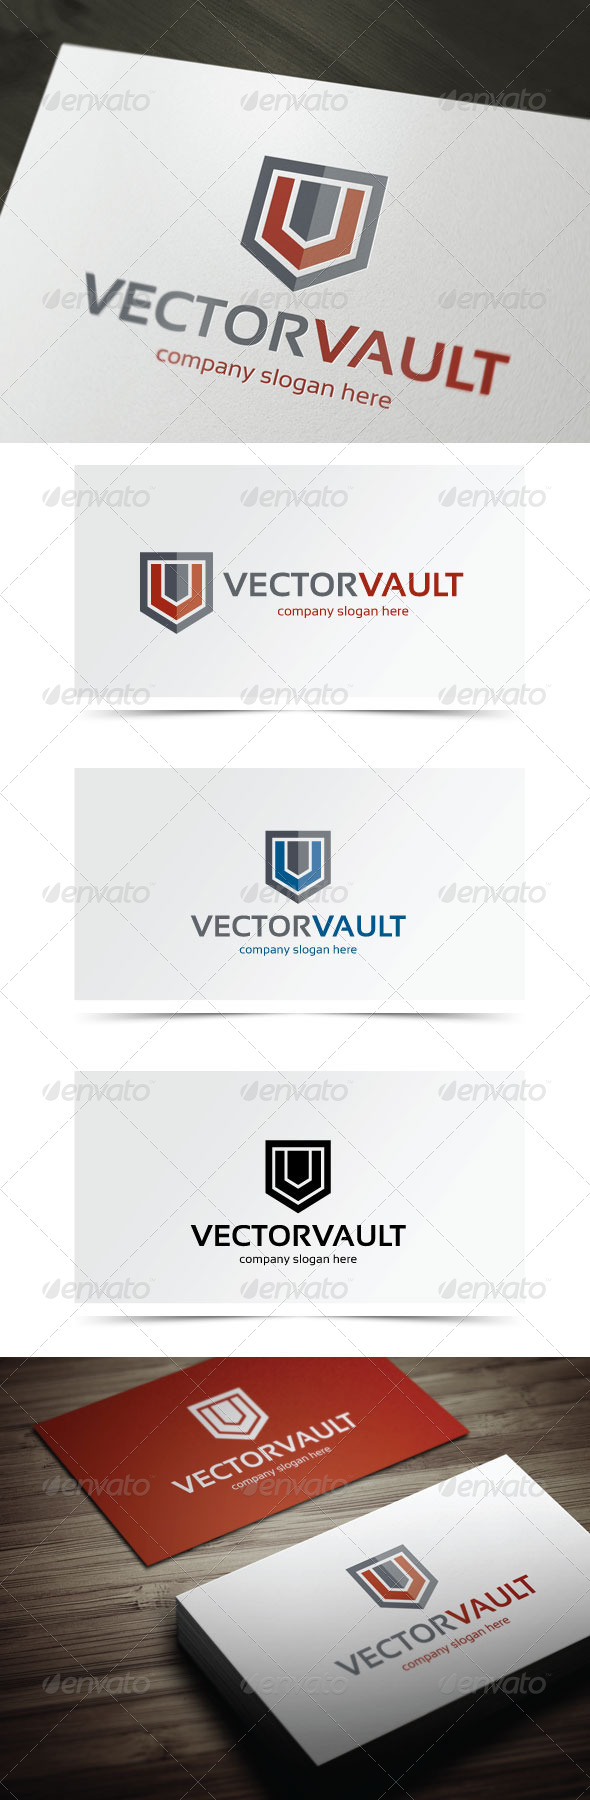 GraphicRiver Vector Vault 5589620